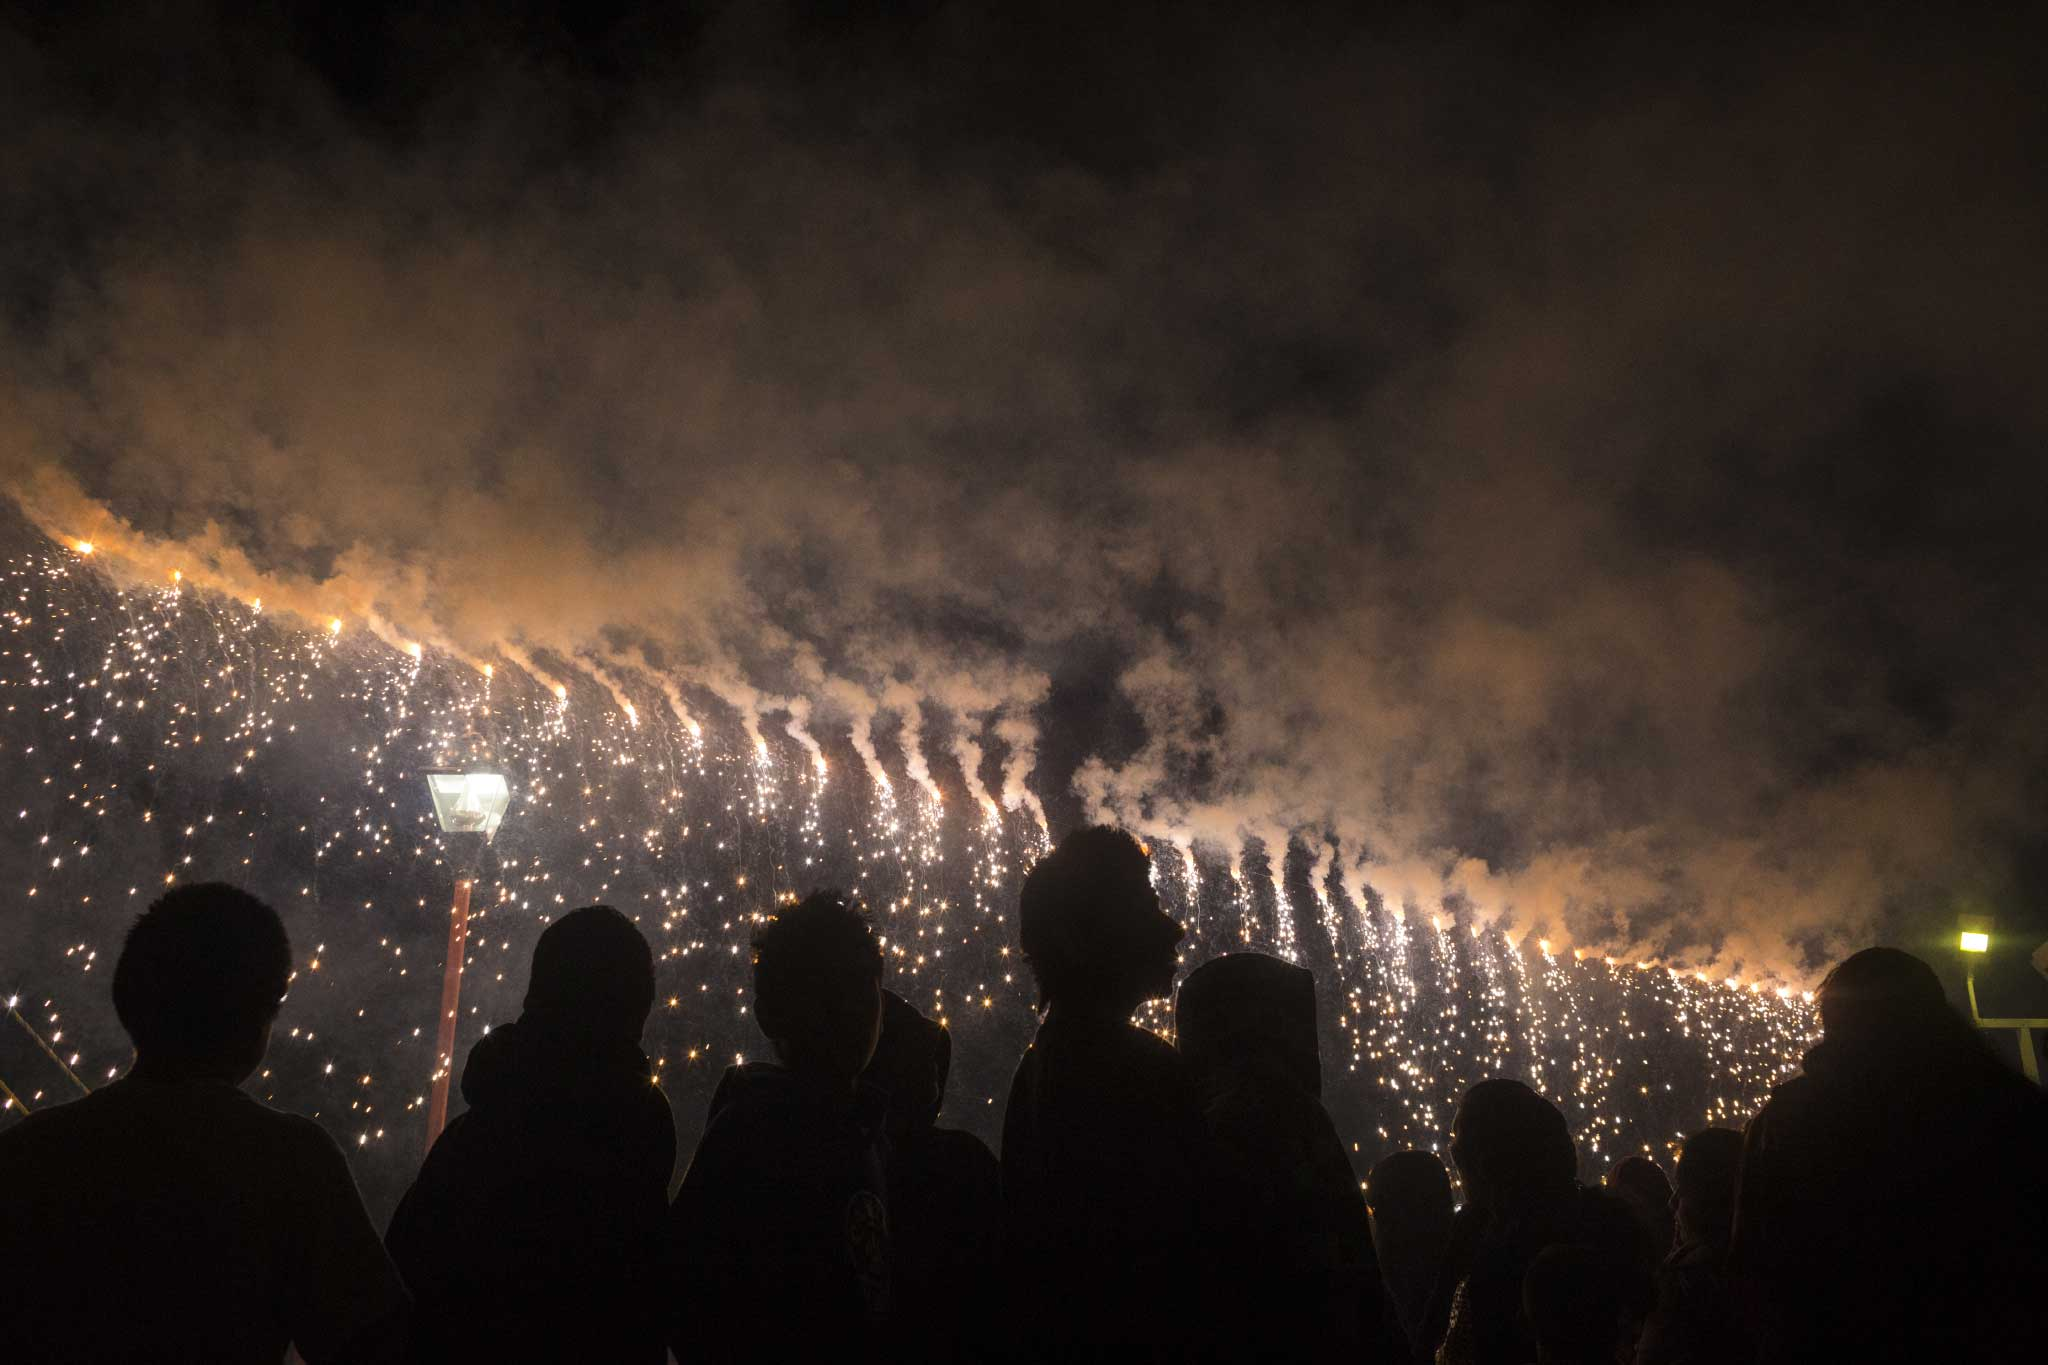 National Geographic PROOF: Sarah Lewkowicz on her internship experience at the magazinePeople gather to watch a fireworks display at the end of the evening entertainment during La Fiesta de la Preciosa Sangre, the most important festival of the year for the town of Teotitlan, Mexico.